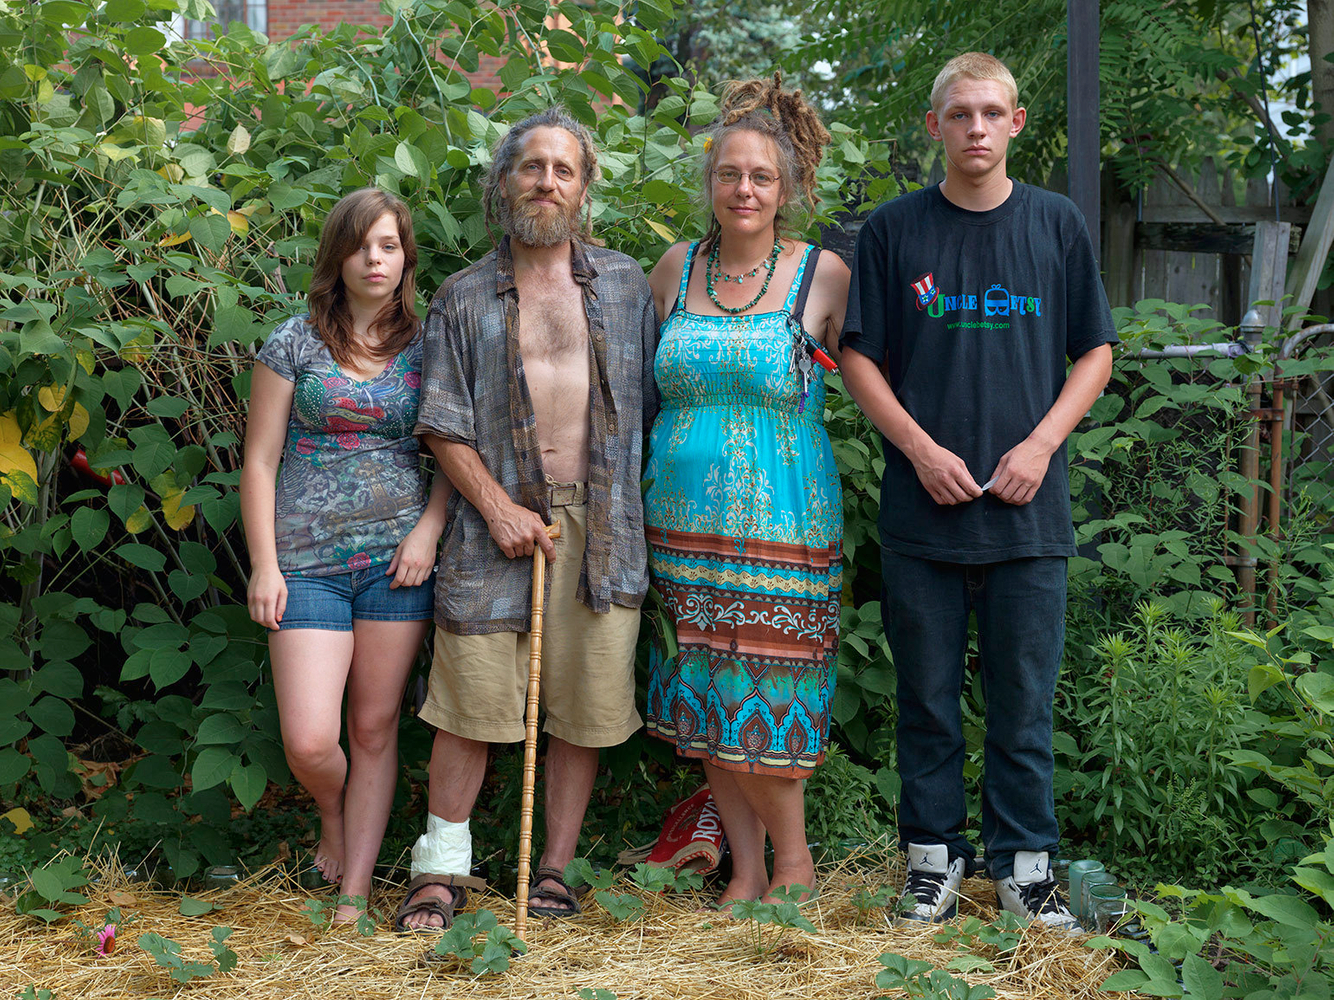 Mary, Jonah, Claire and Rodney, Goldengate Street Residents, Detroit 2012